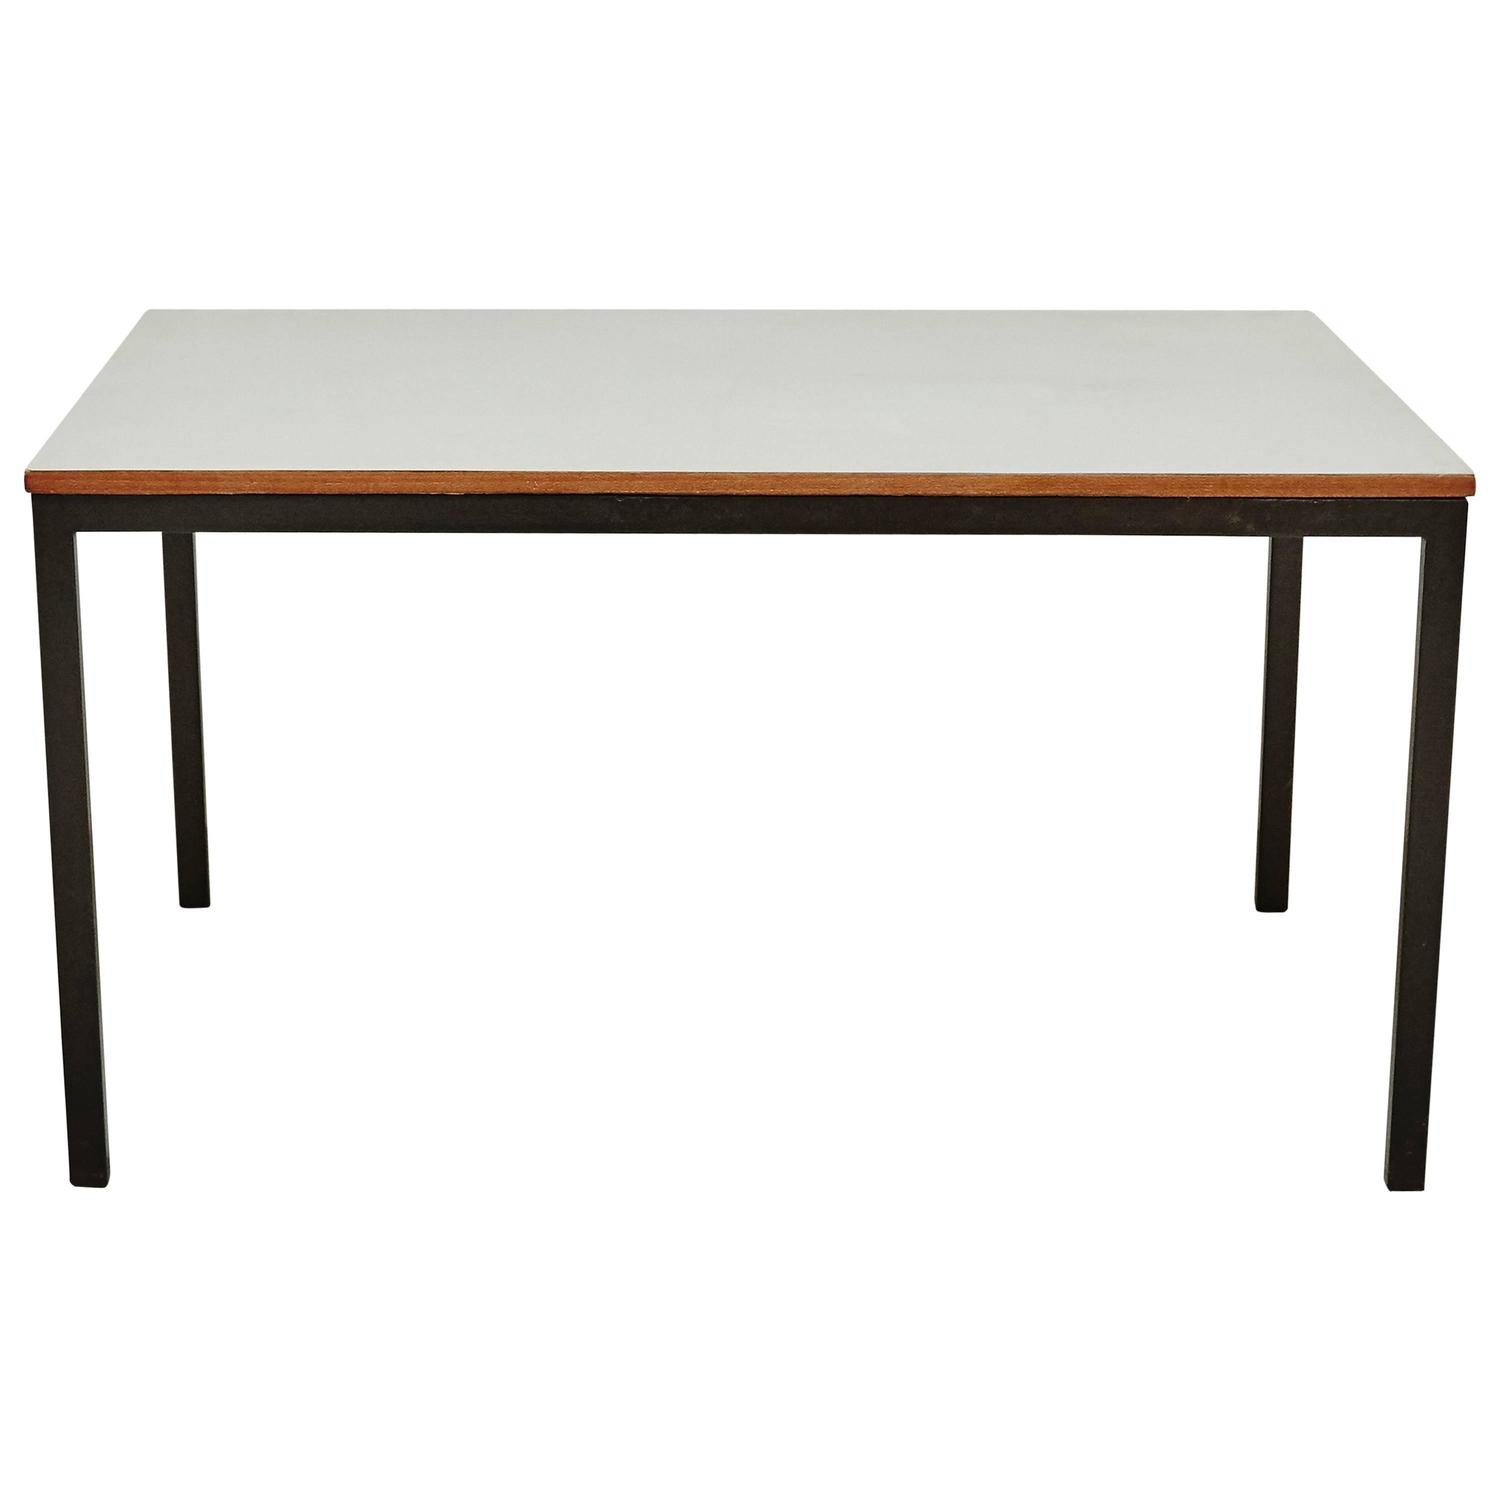 Charlotte perriand cansado table circa 1950 for sale at 1stdibs - Table charlotte perriand ...